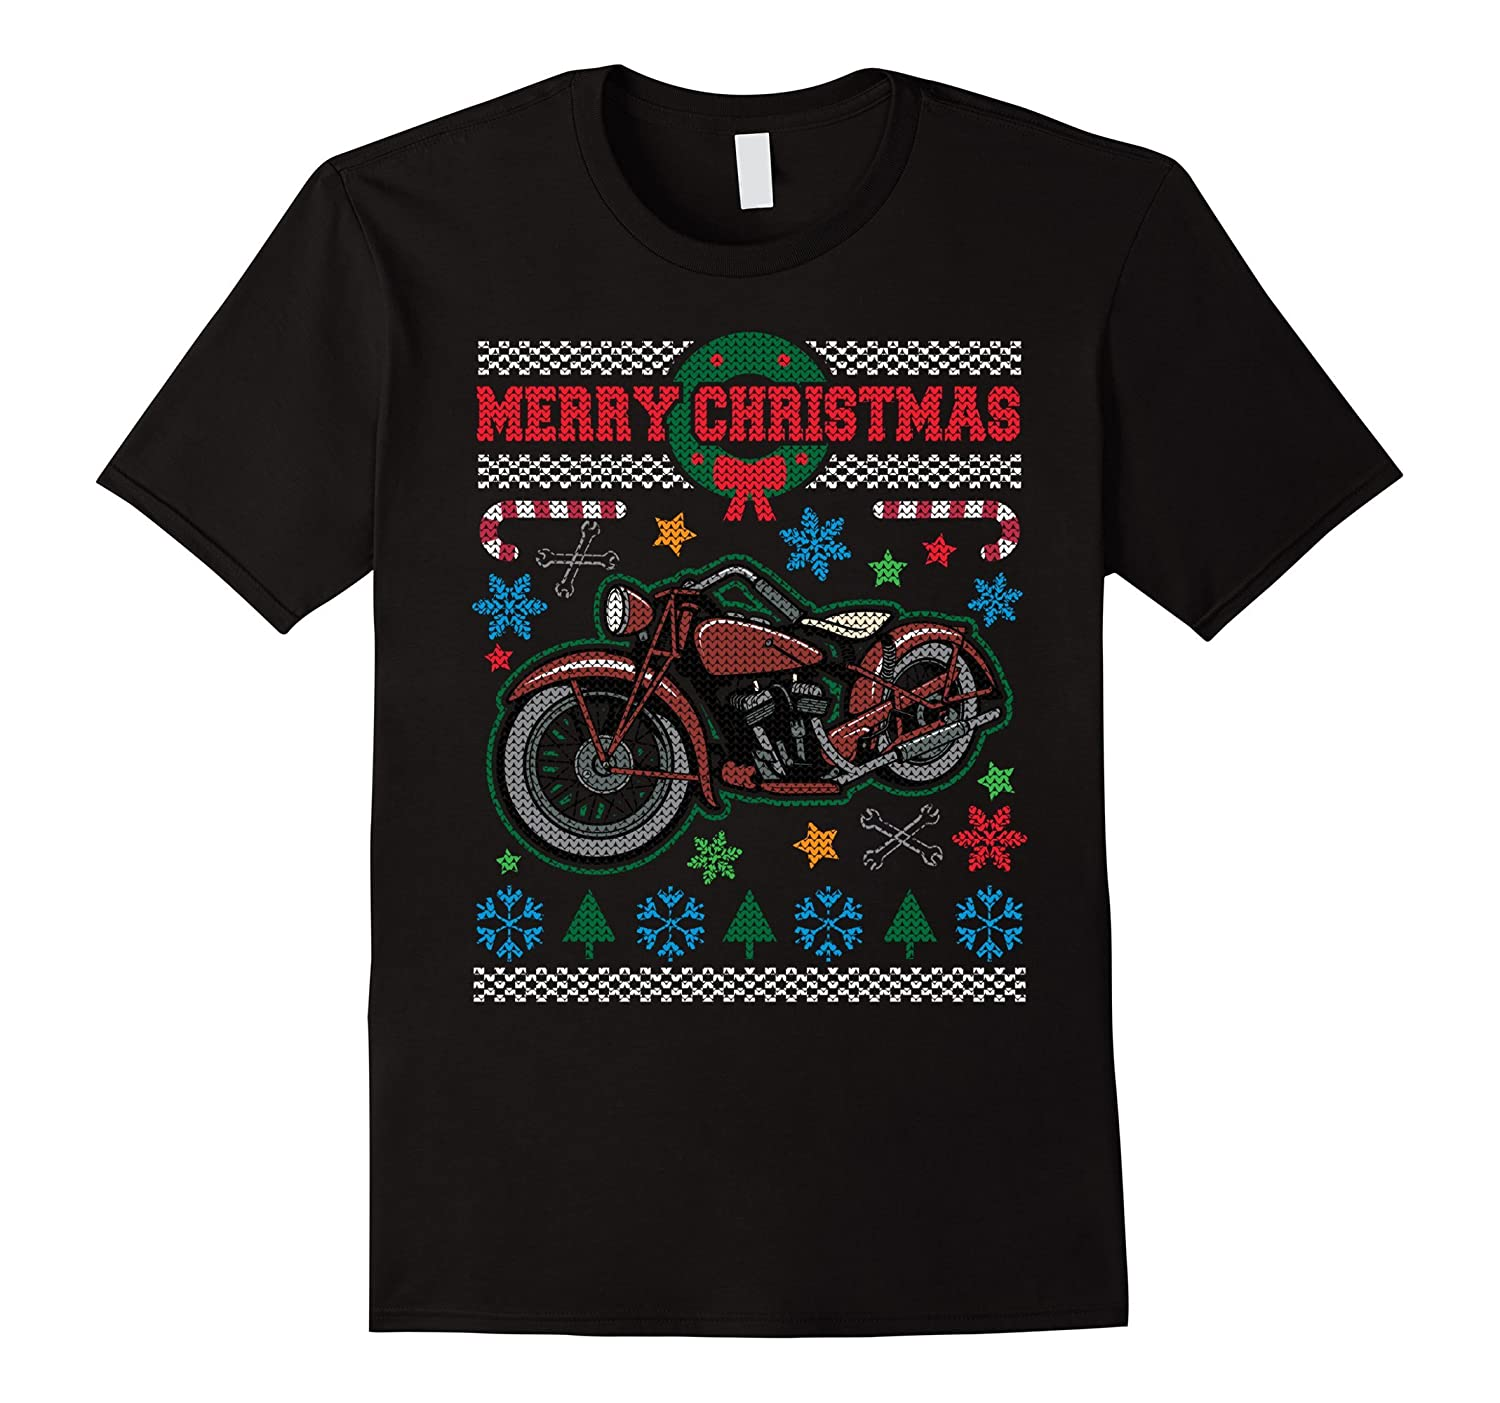 Merry Christmas Vintage Motorcycle Ugly 3 T-shirt